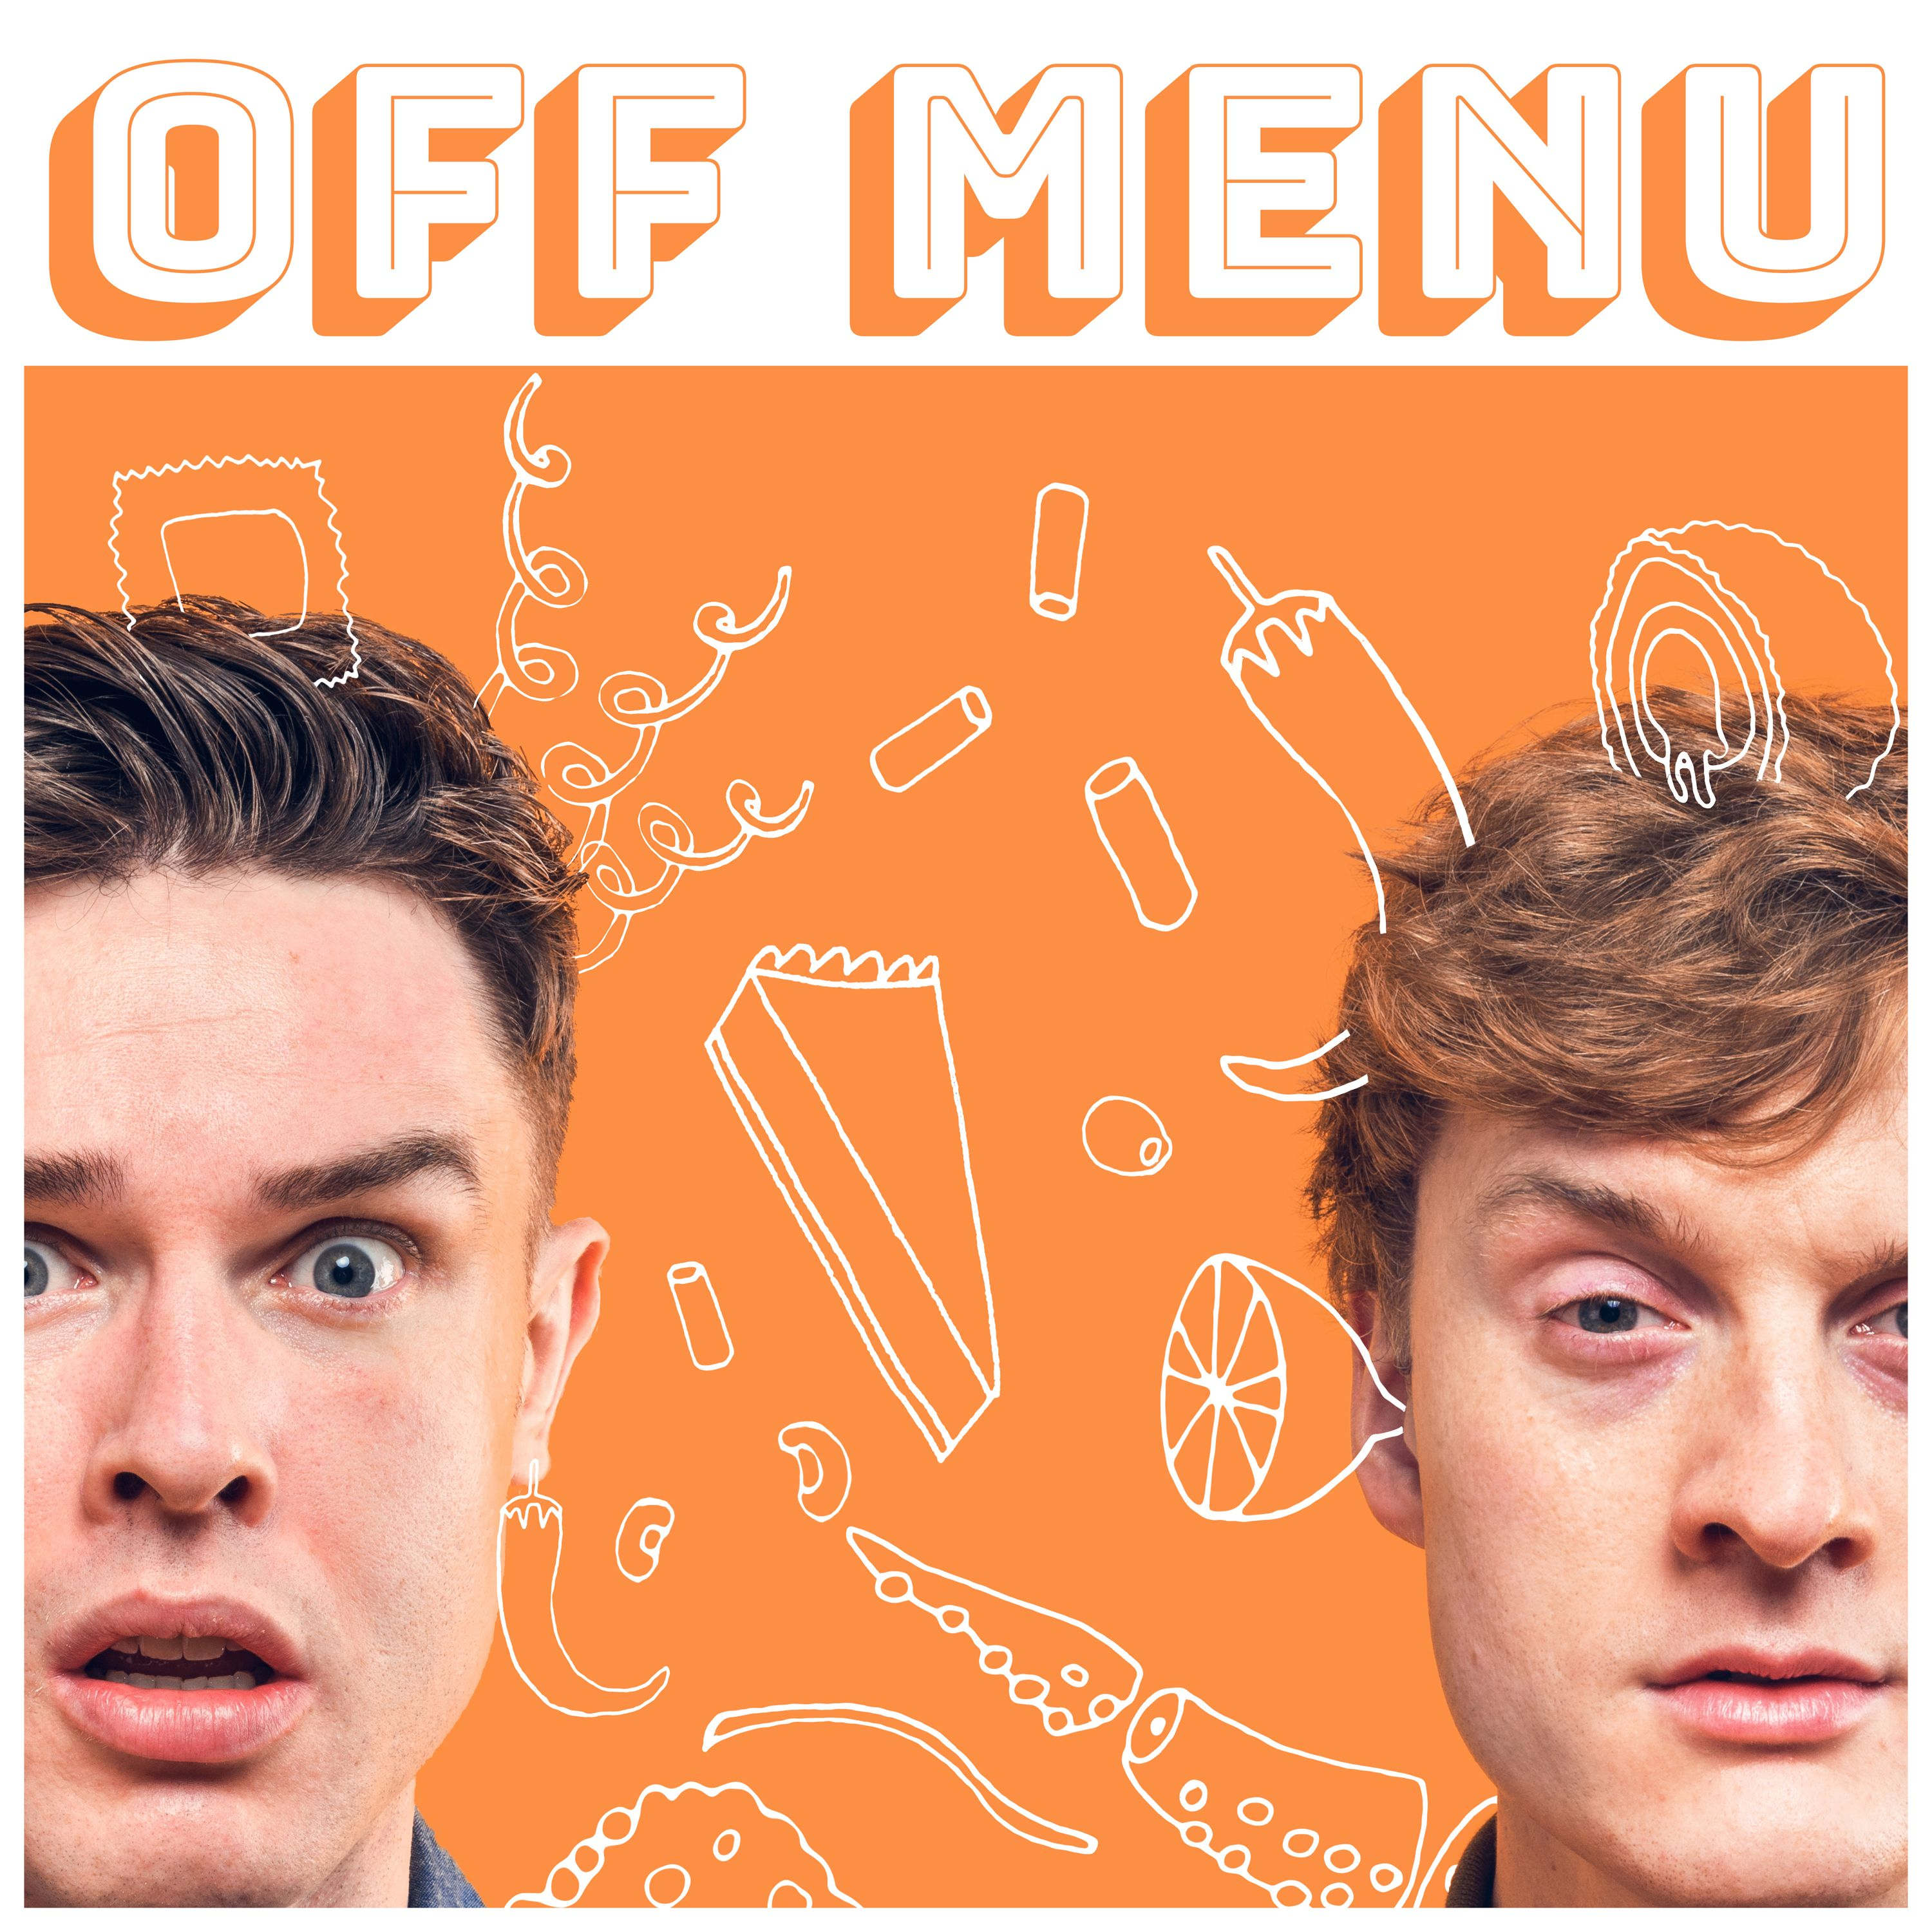 Ep 100: Ed Gamble and James Acaster (with special guest genie Claudia Winkleman)